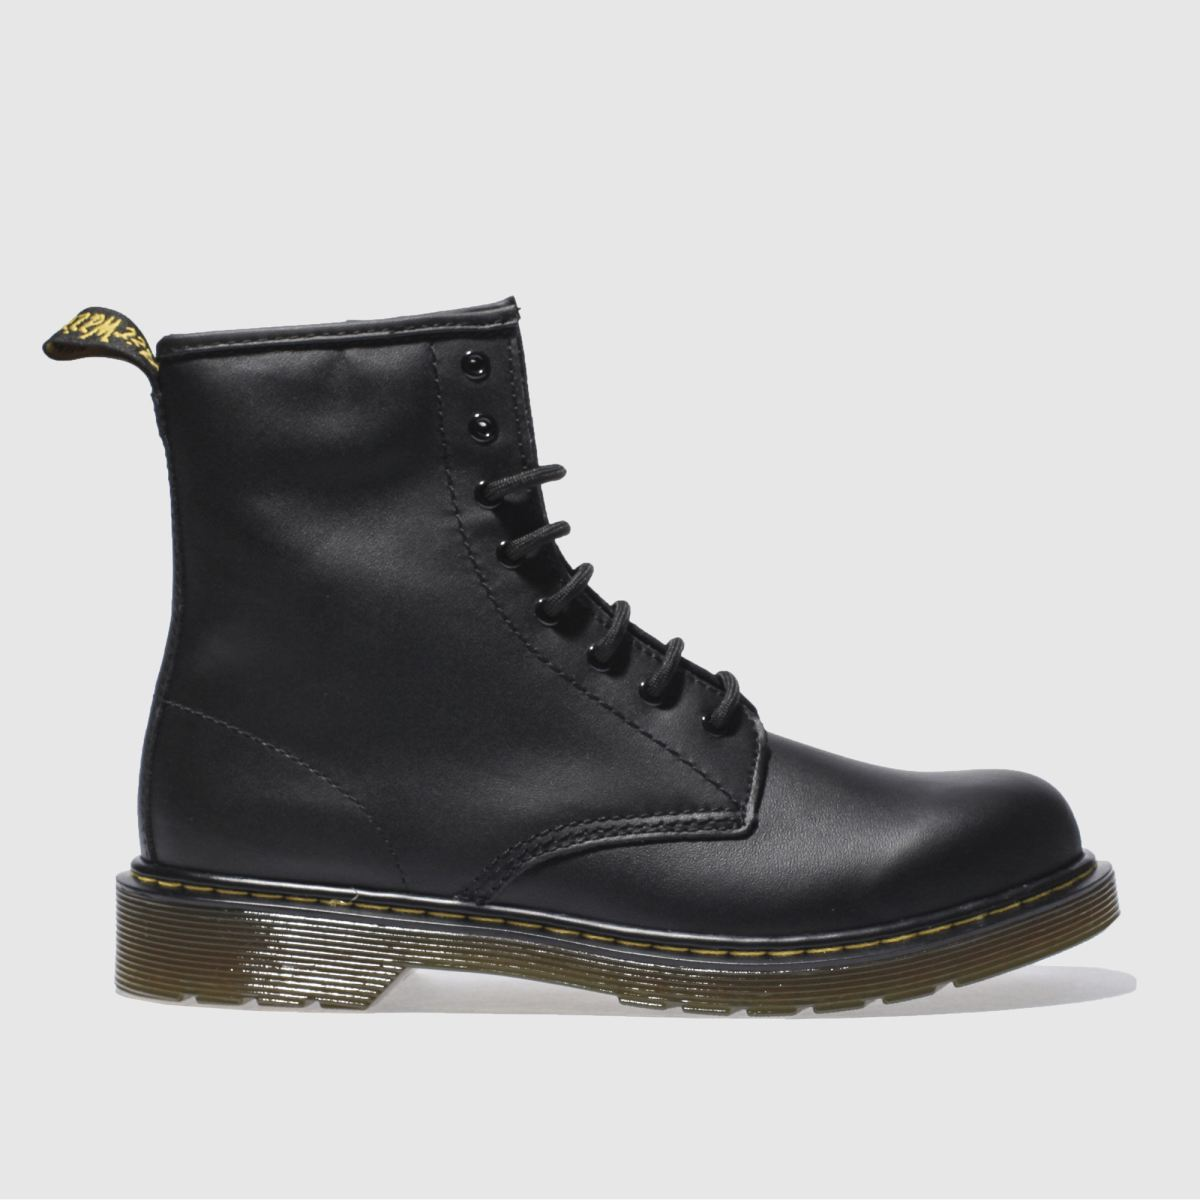 Dr Martens Black 1460 Unisex Youth Youth